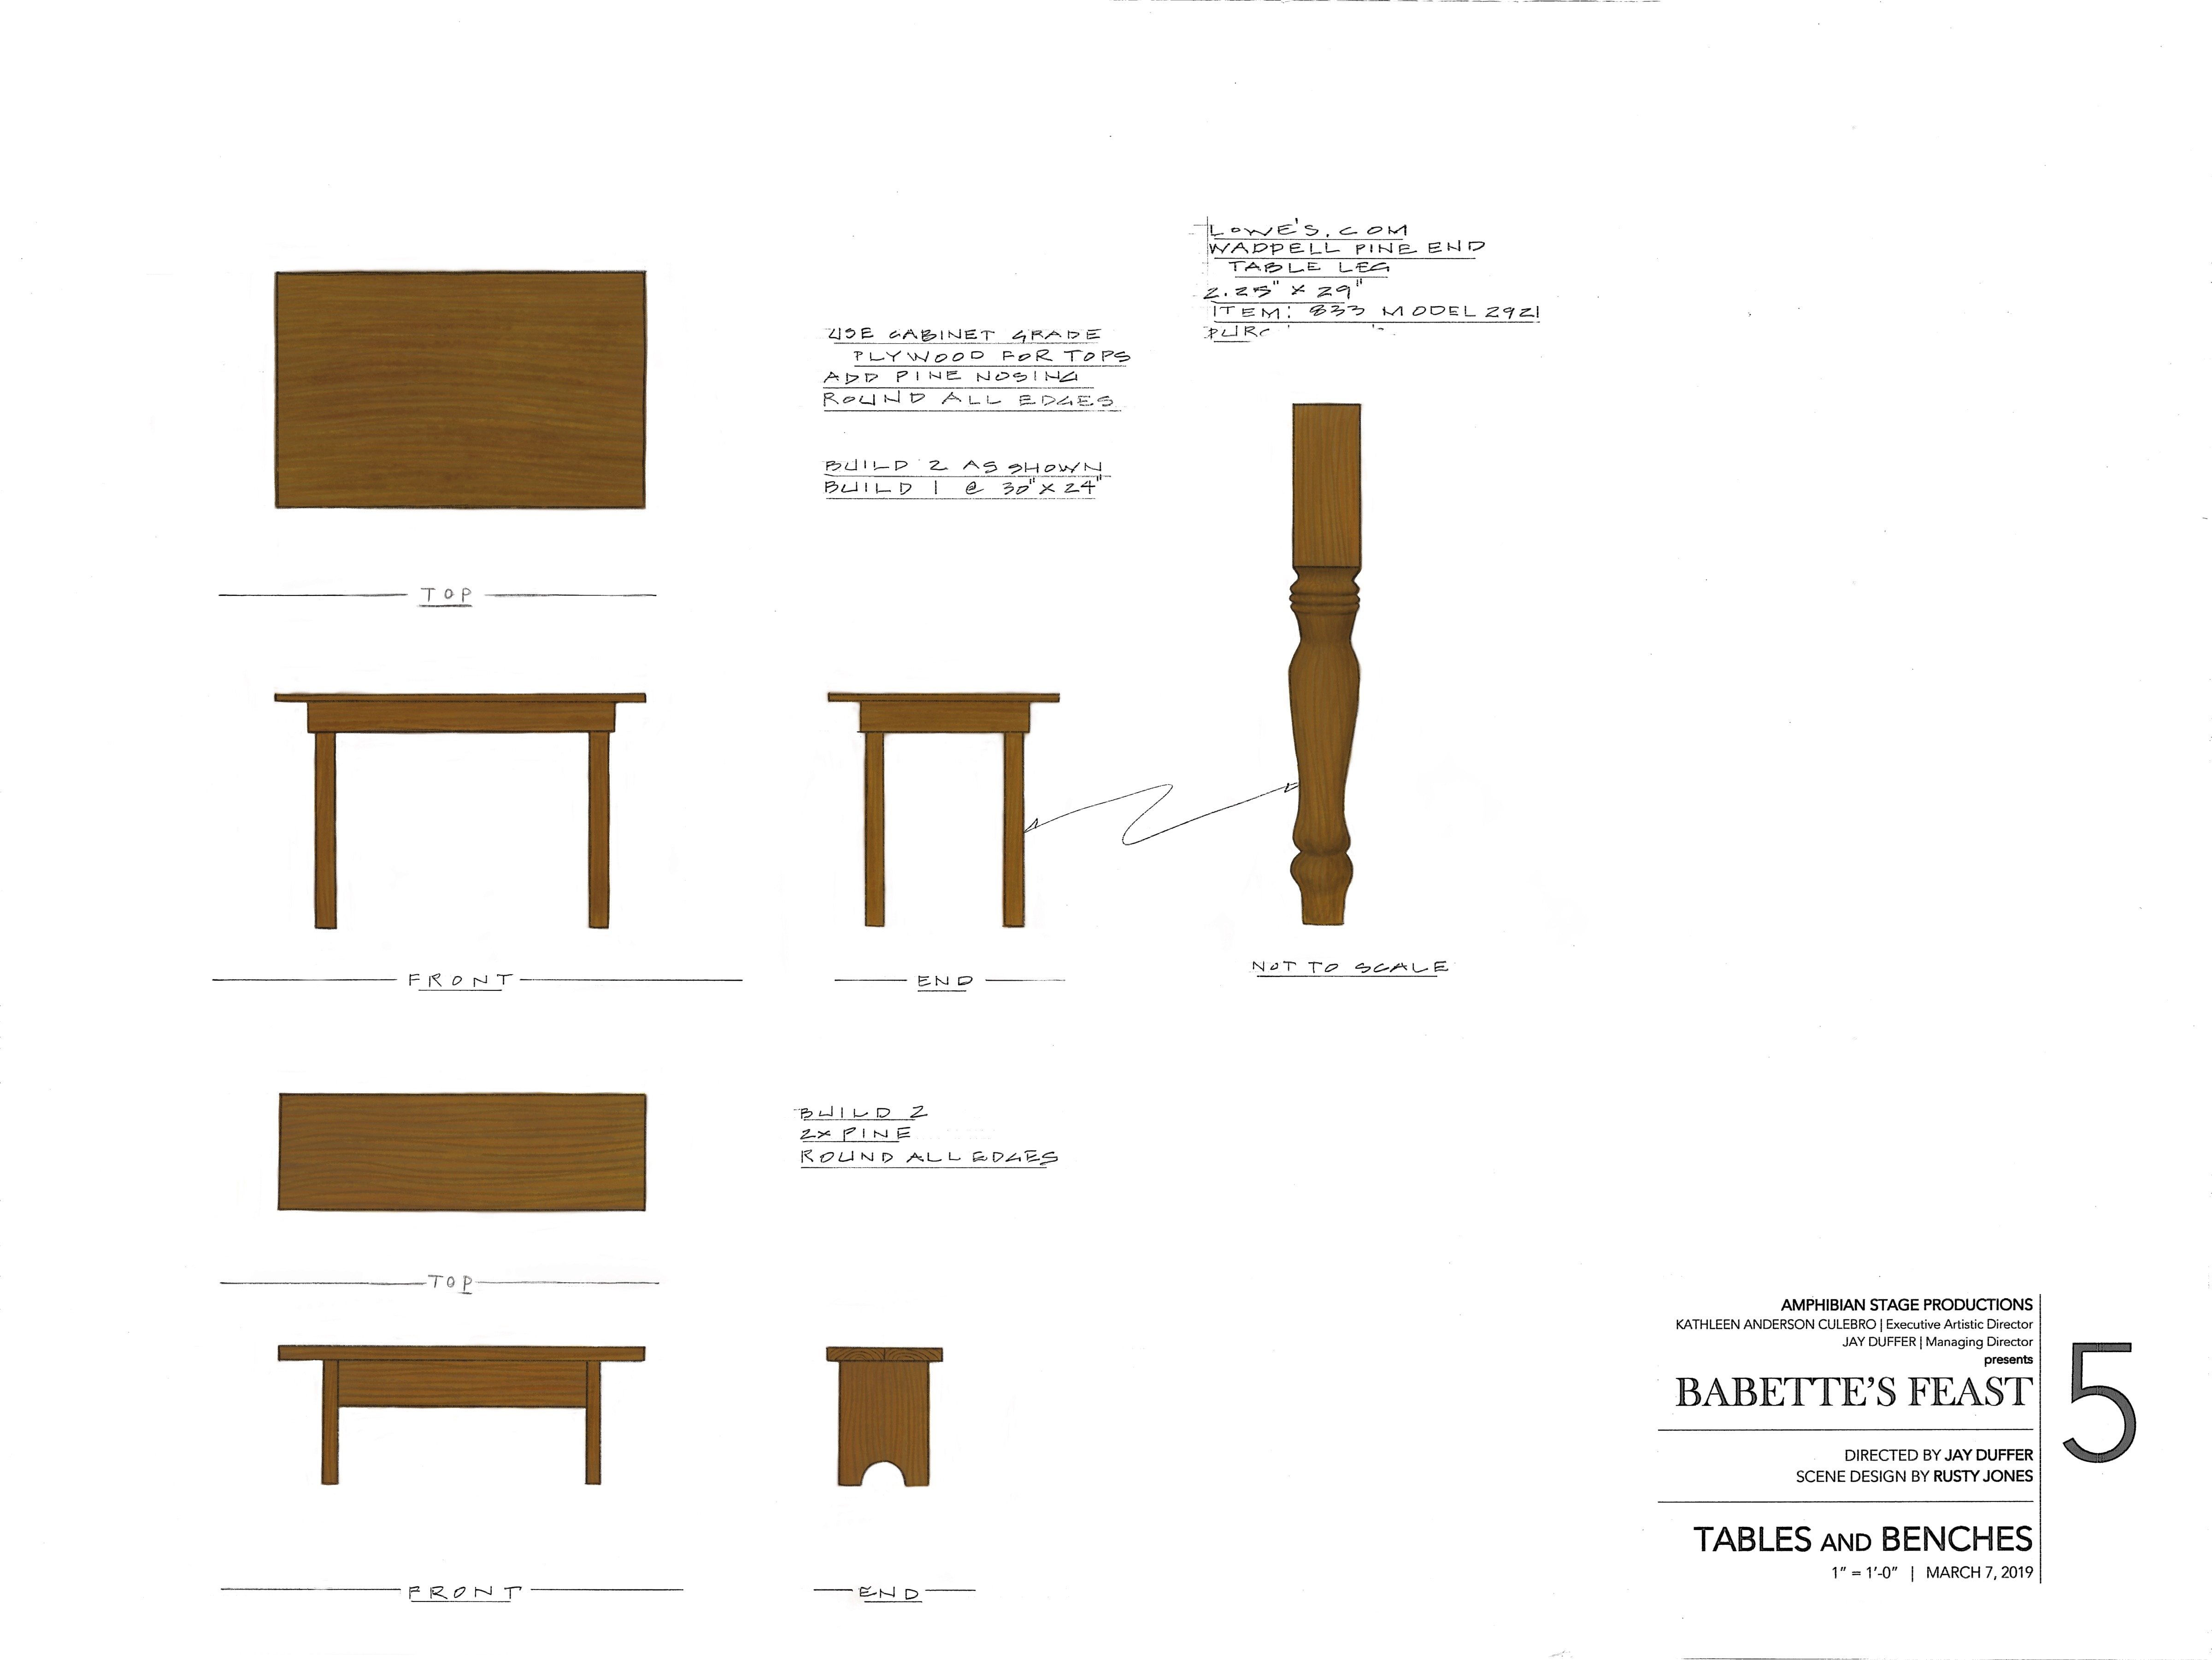 Painter Elevation of Table & Bench